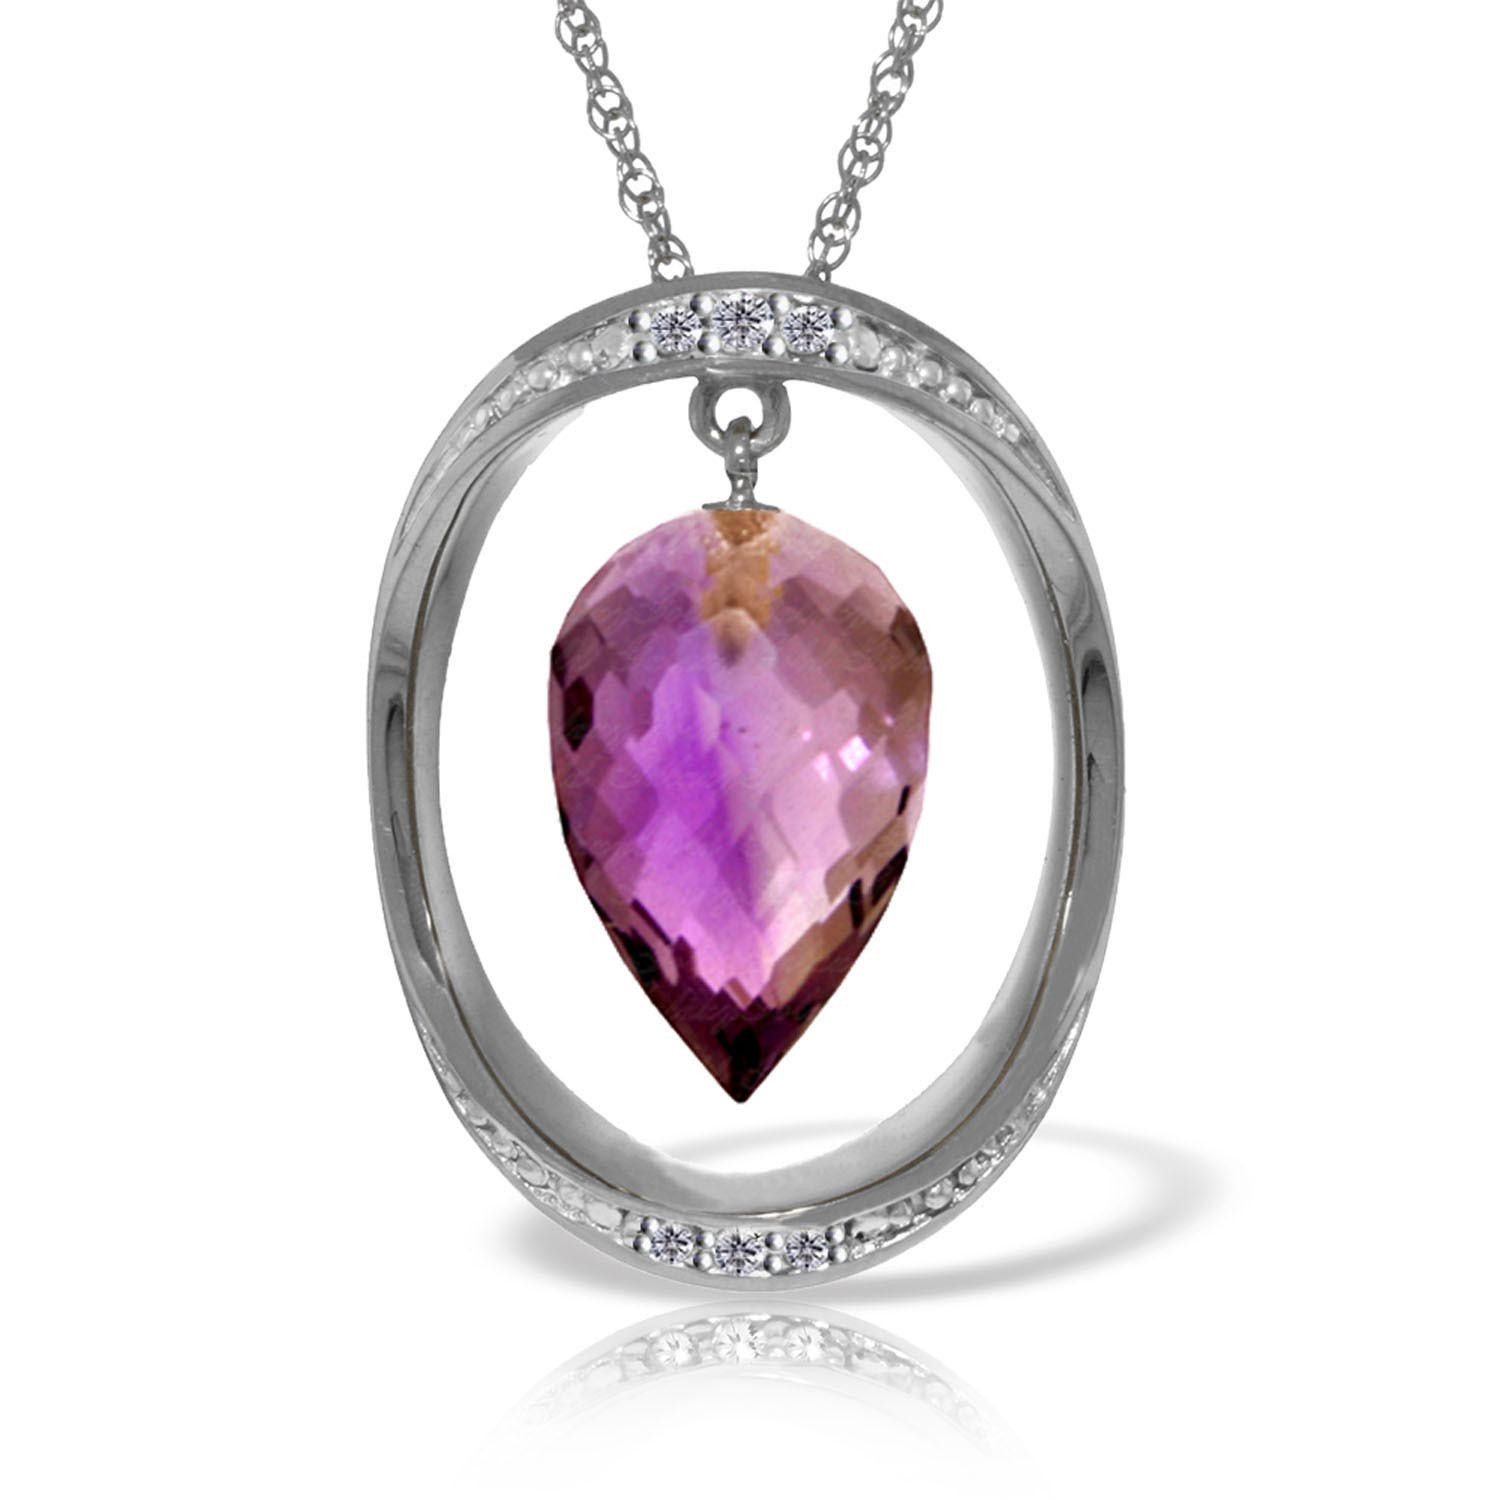 Amethyst & Diamond Drop Pendant Necklace in 9ct White Gold